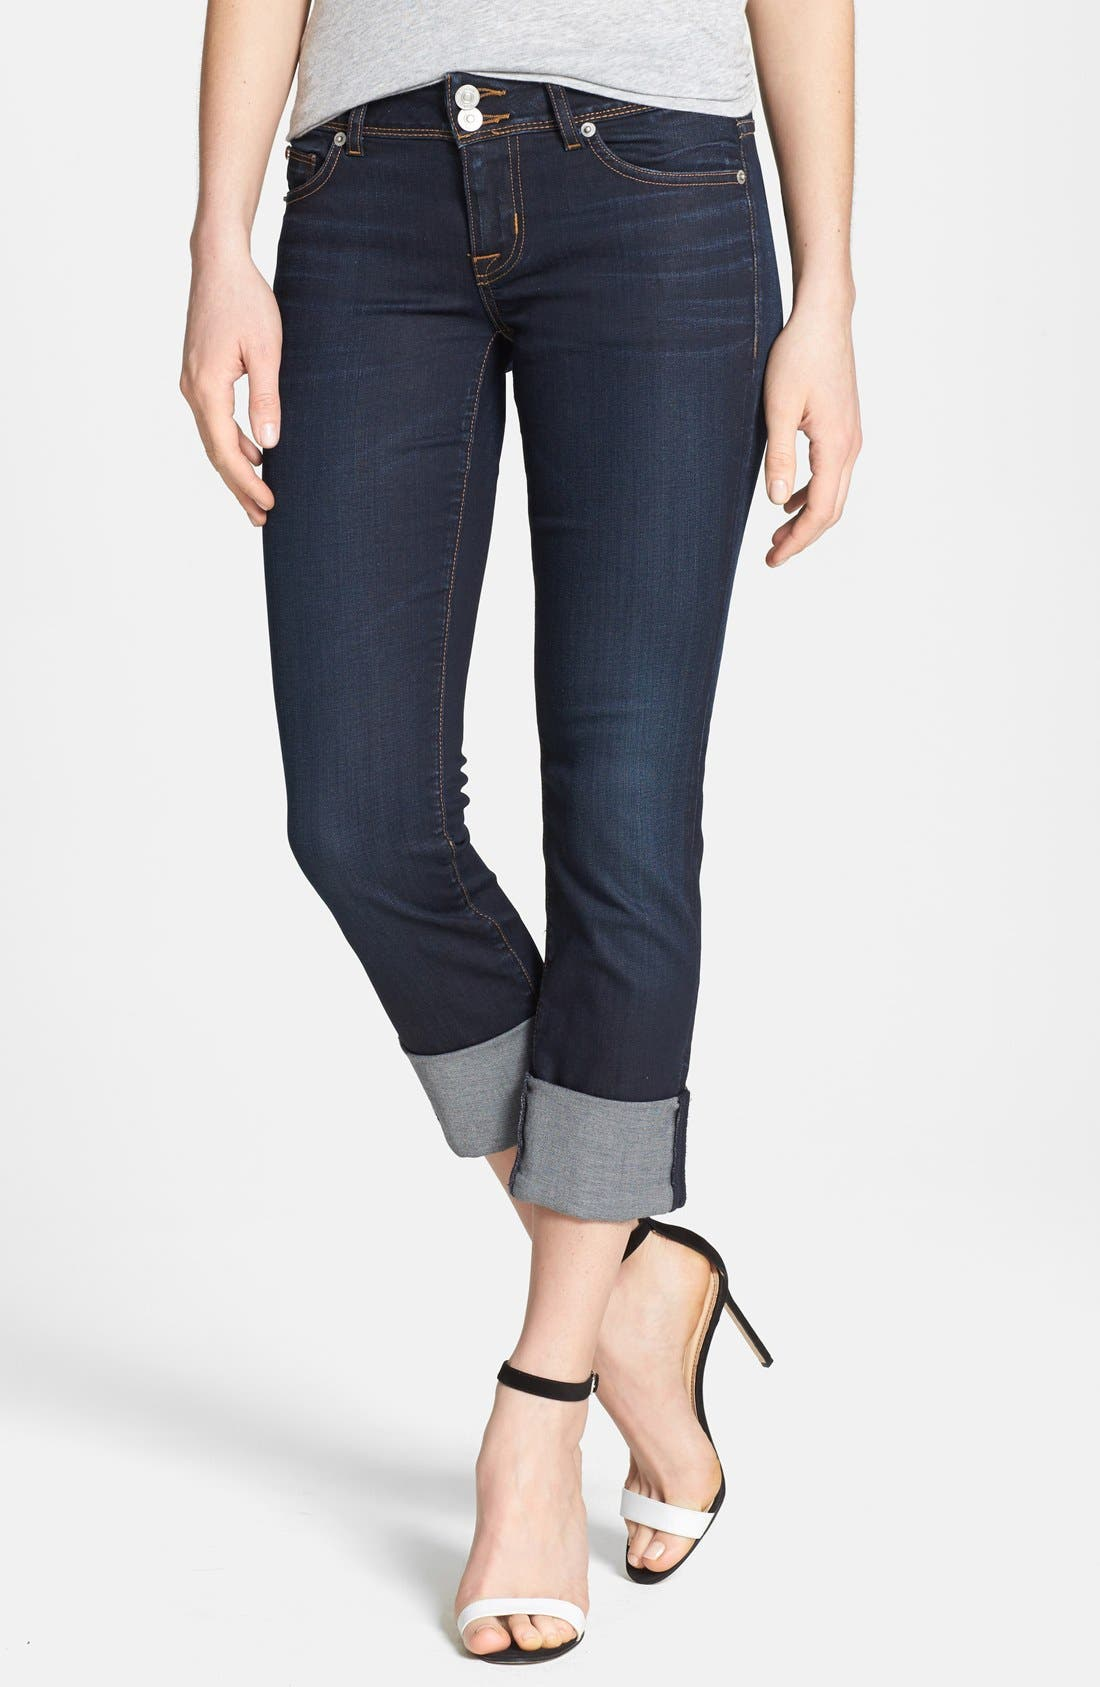 Alternate Image 1 Selected - Hudson Jeans 'Ginny' Crop Stretch Jeans (Forsythia)